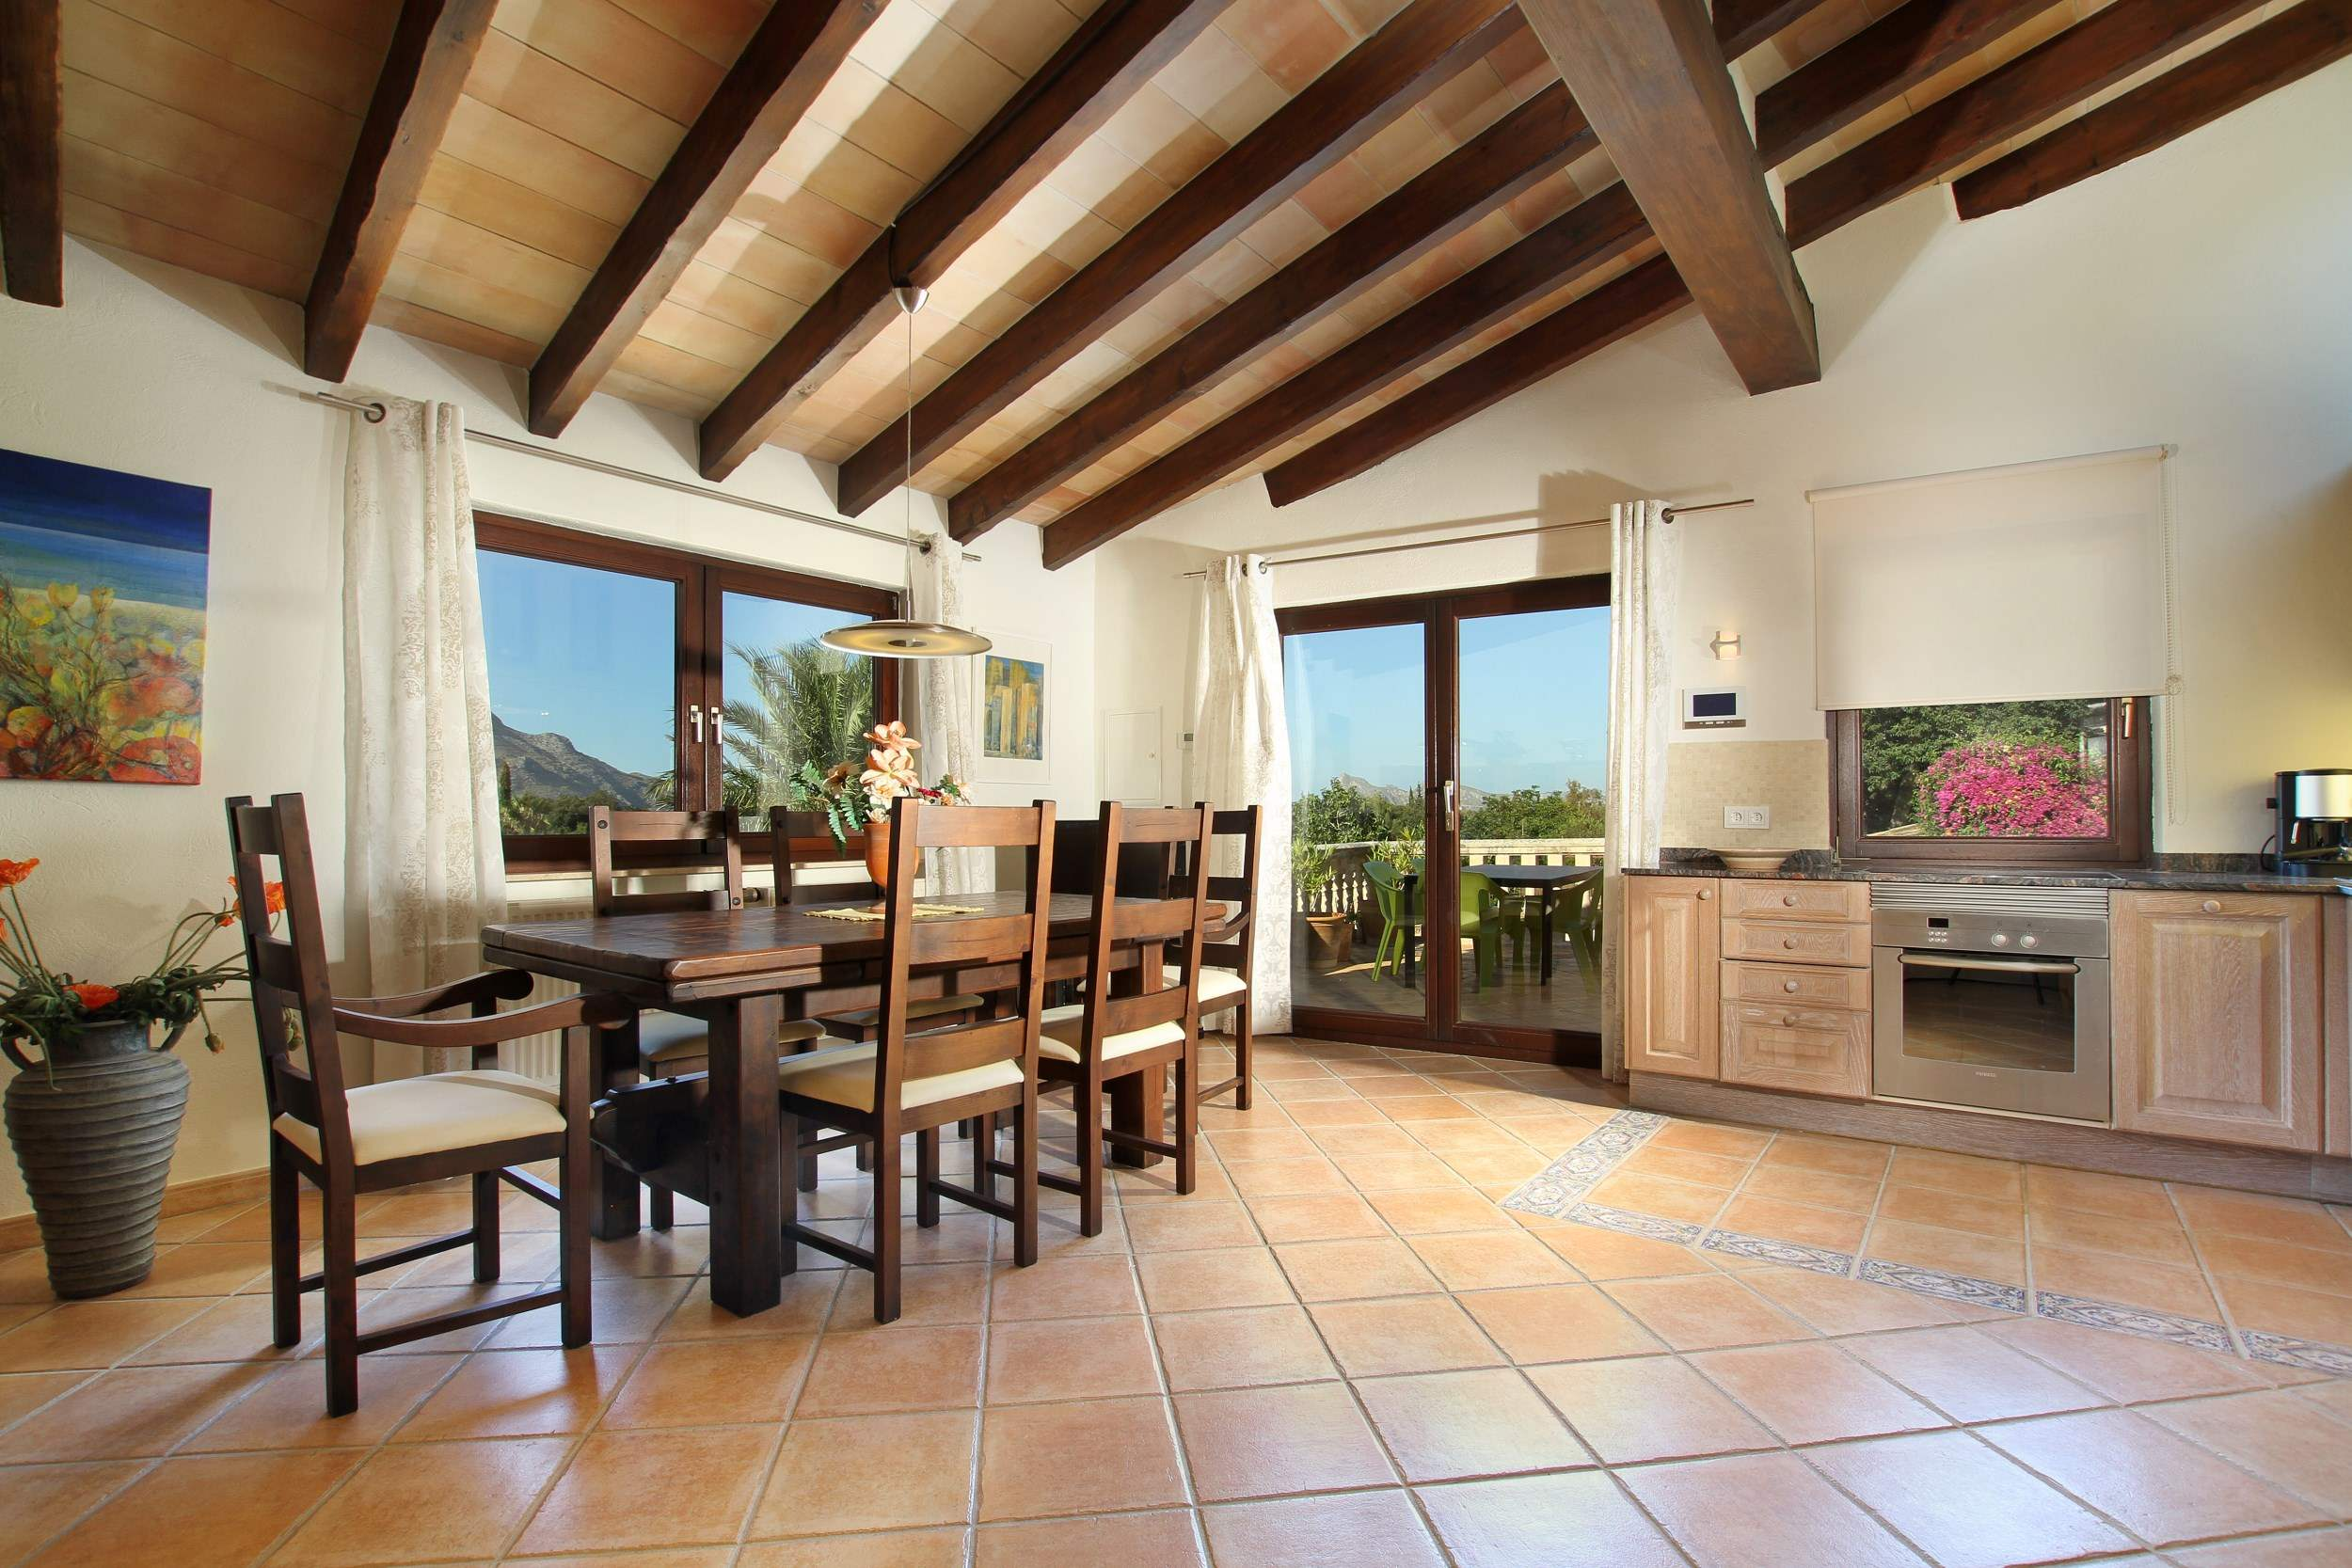 Villa Llop, 4 bedroom villa in Pollensa & Puerto Pollensa , Majorca Photo #18